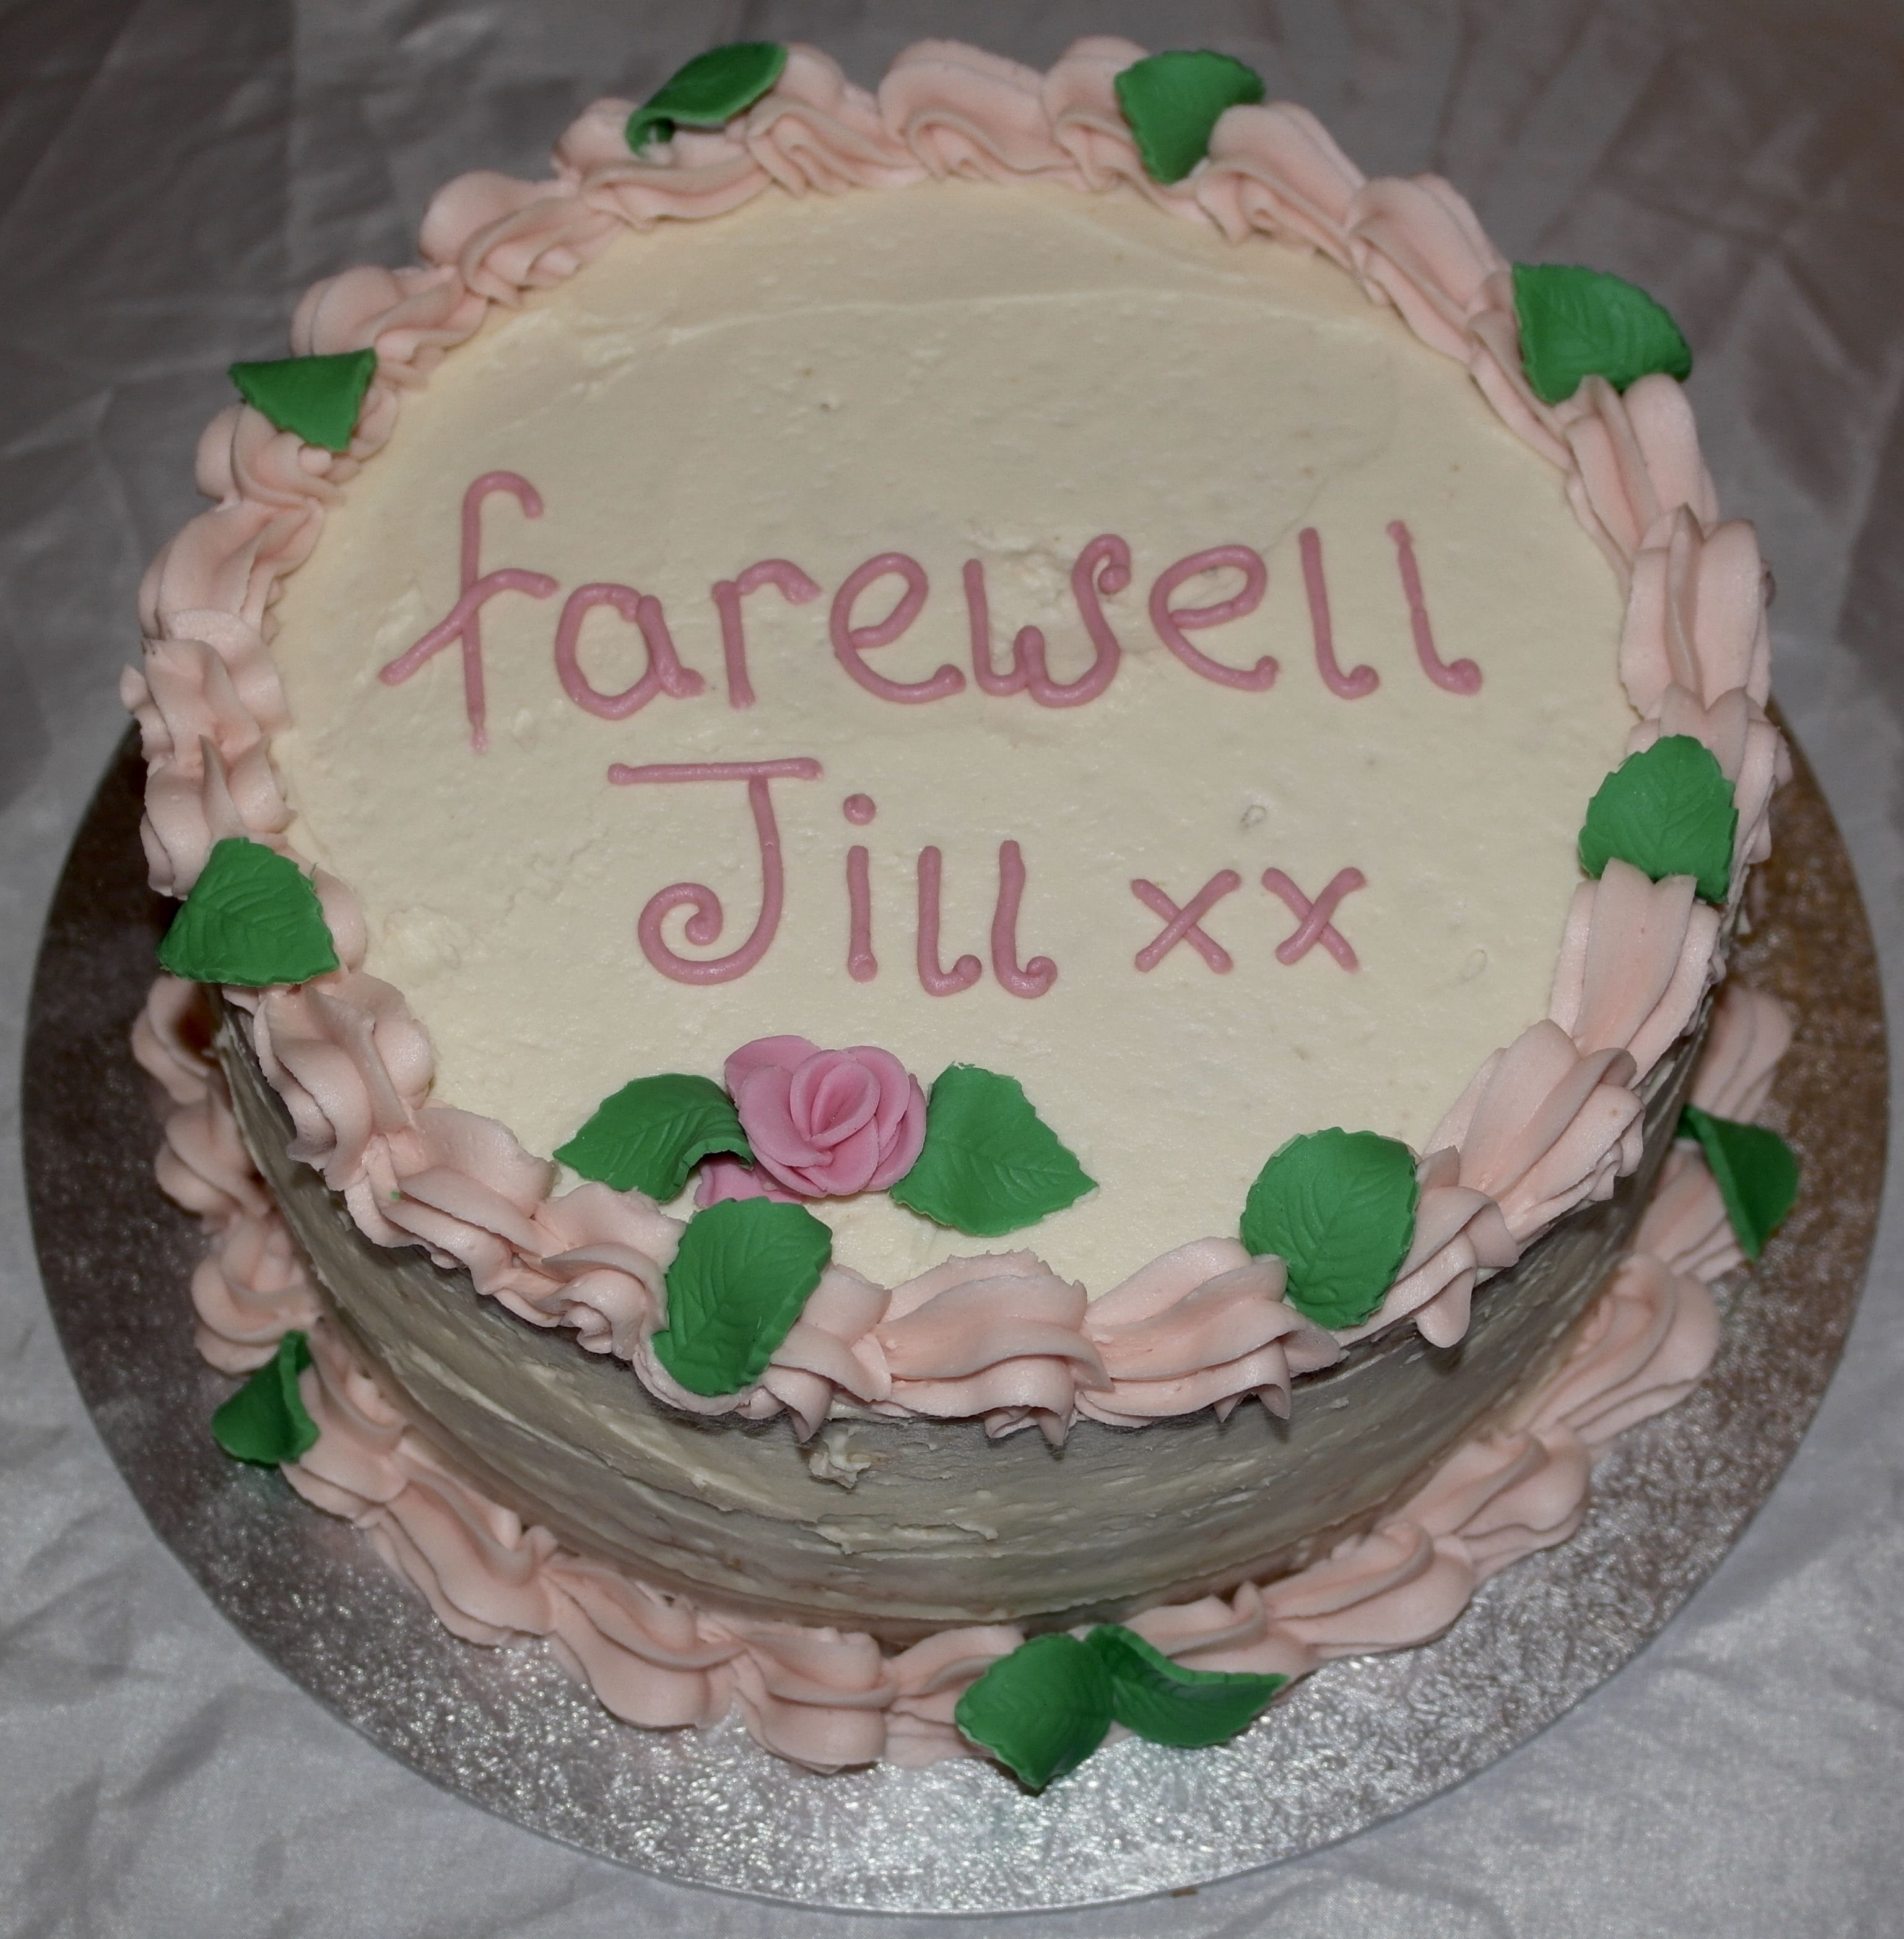 Farewell Cake Vanilla Sponge With Butter Icing And Fondant